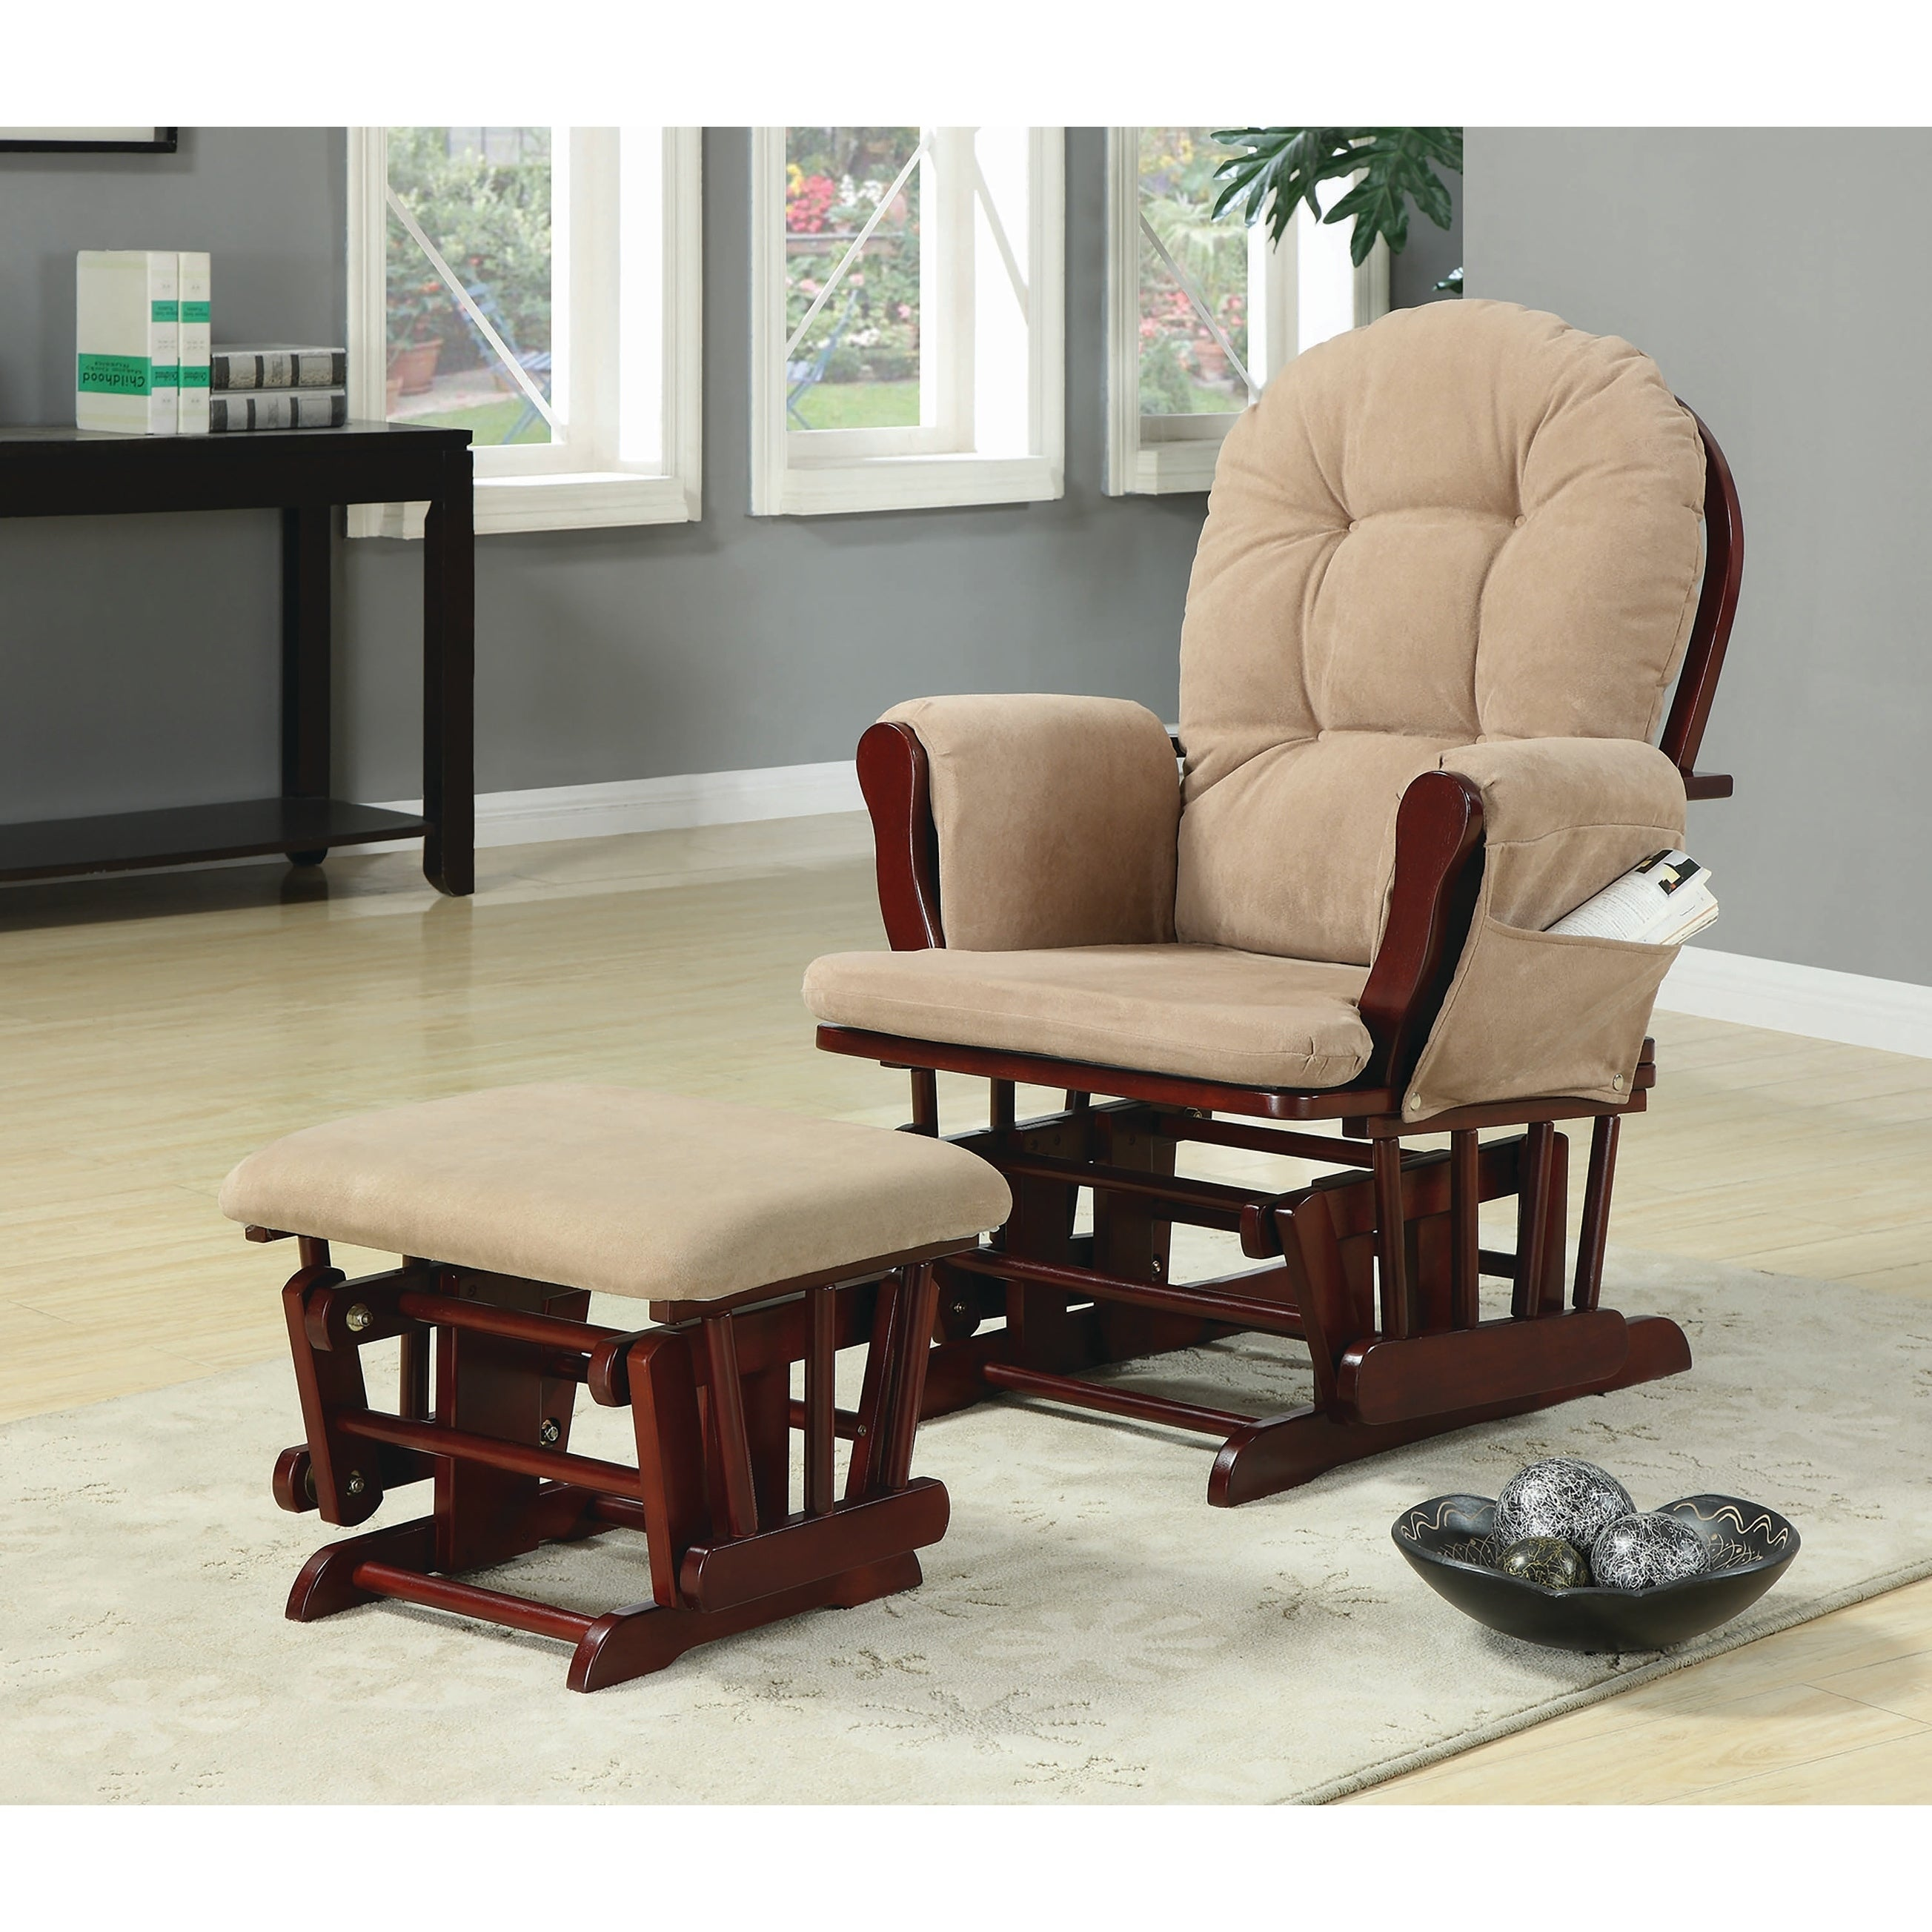 Coaster Furniture Brown Microfiber Glider Recliner Chair ...